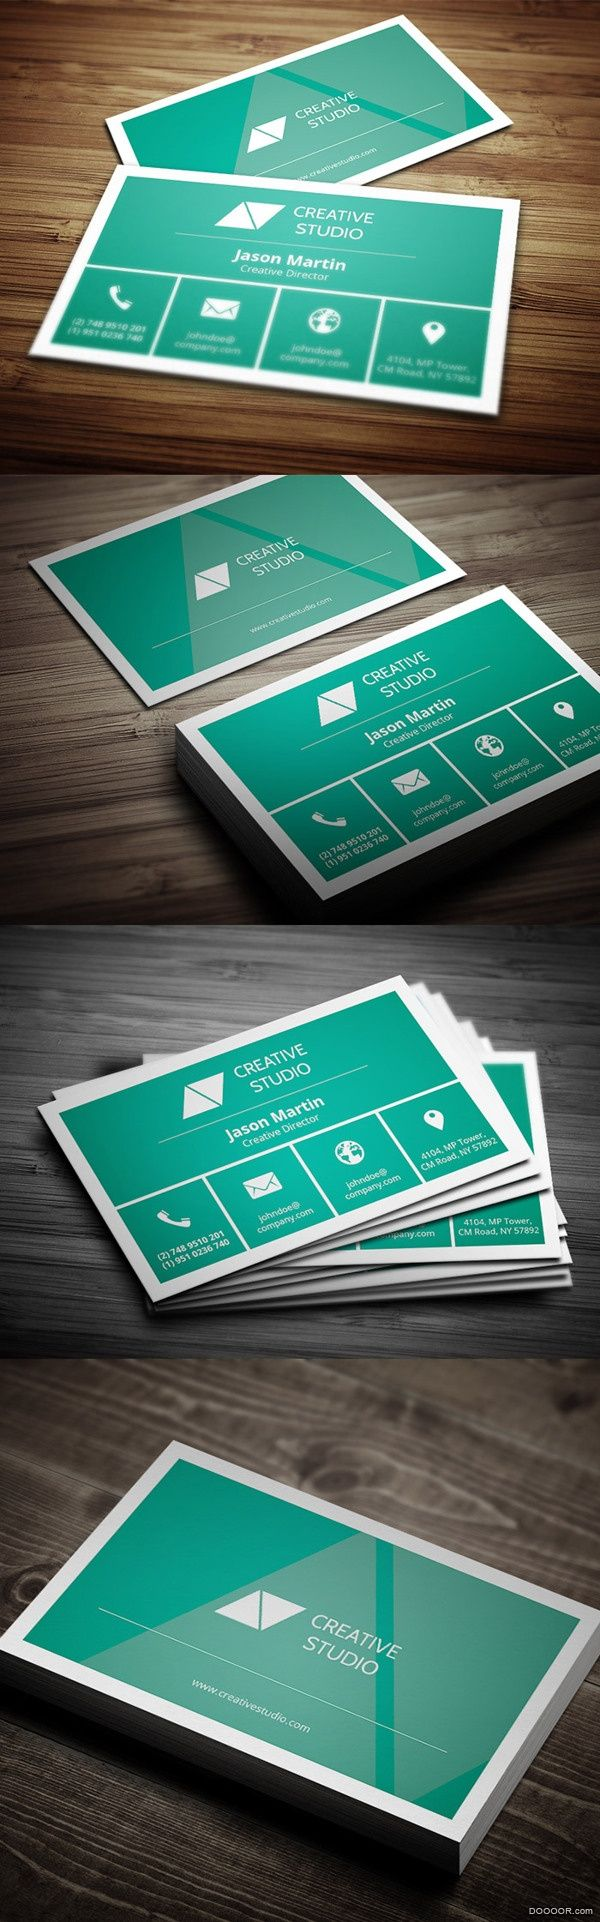 34 best name card images on Pinterest | Html, Business cards and ...